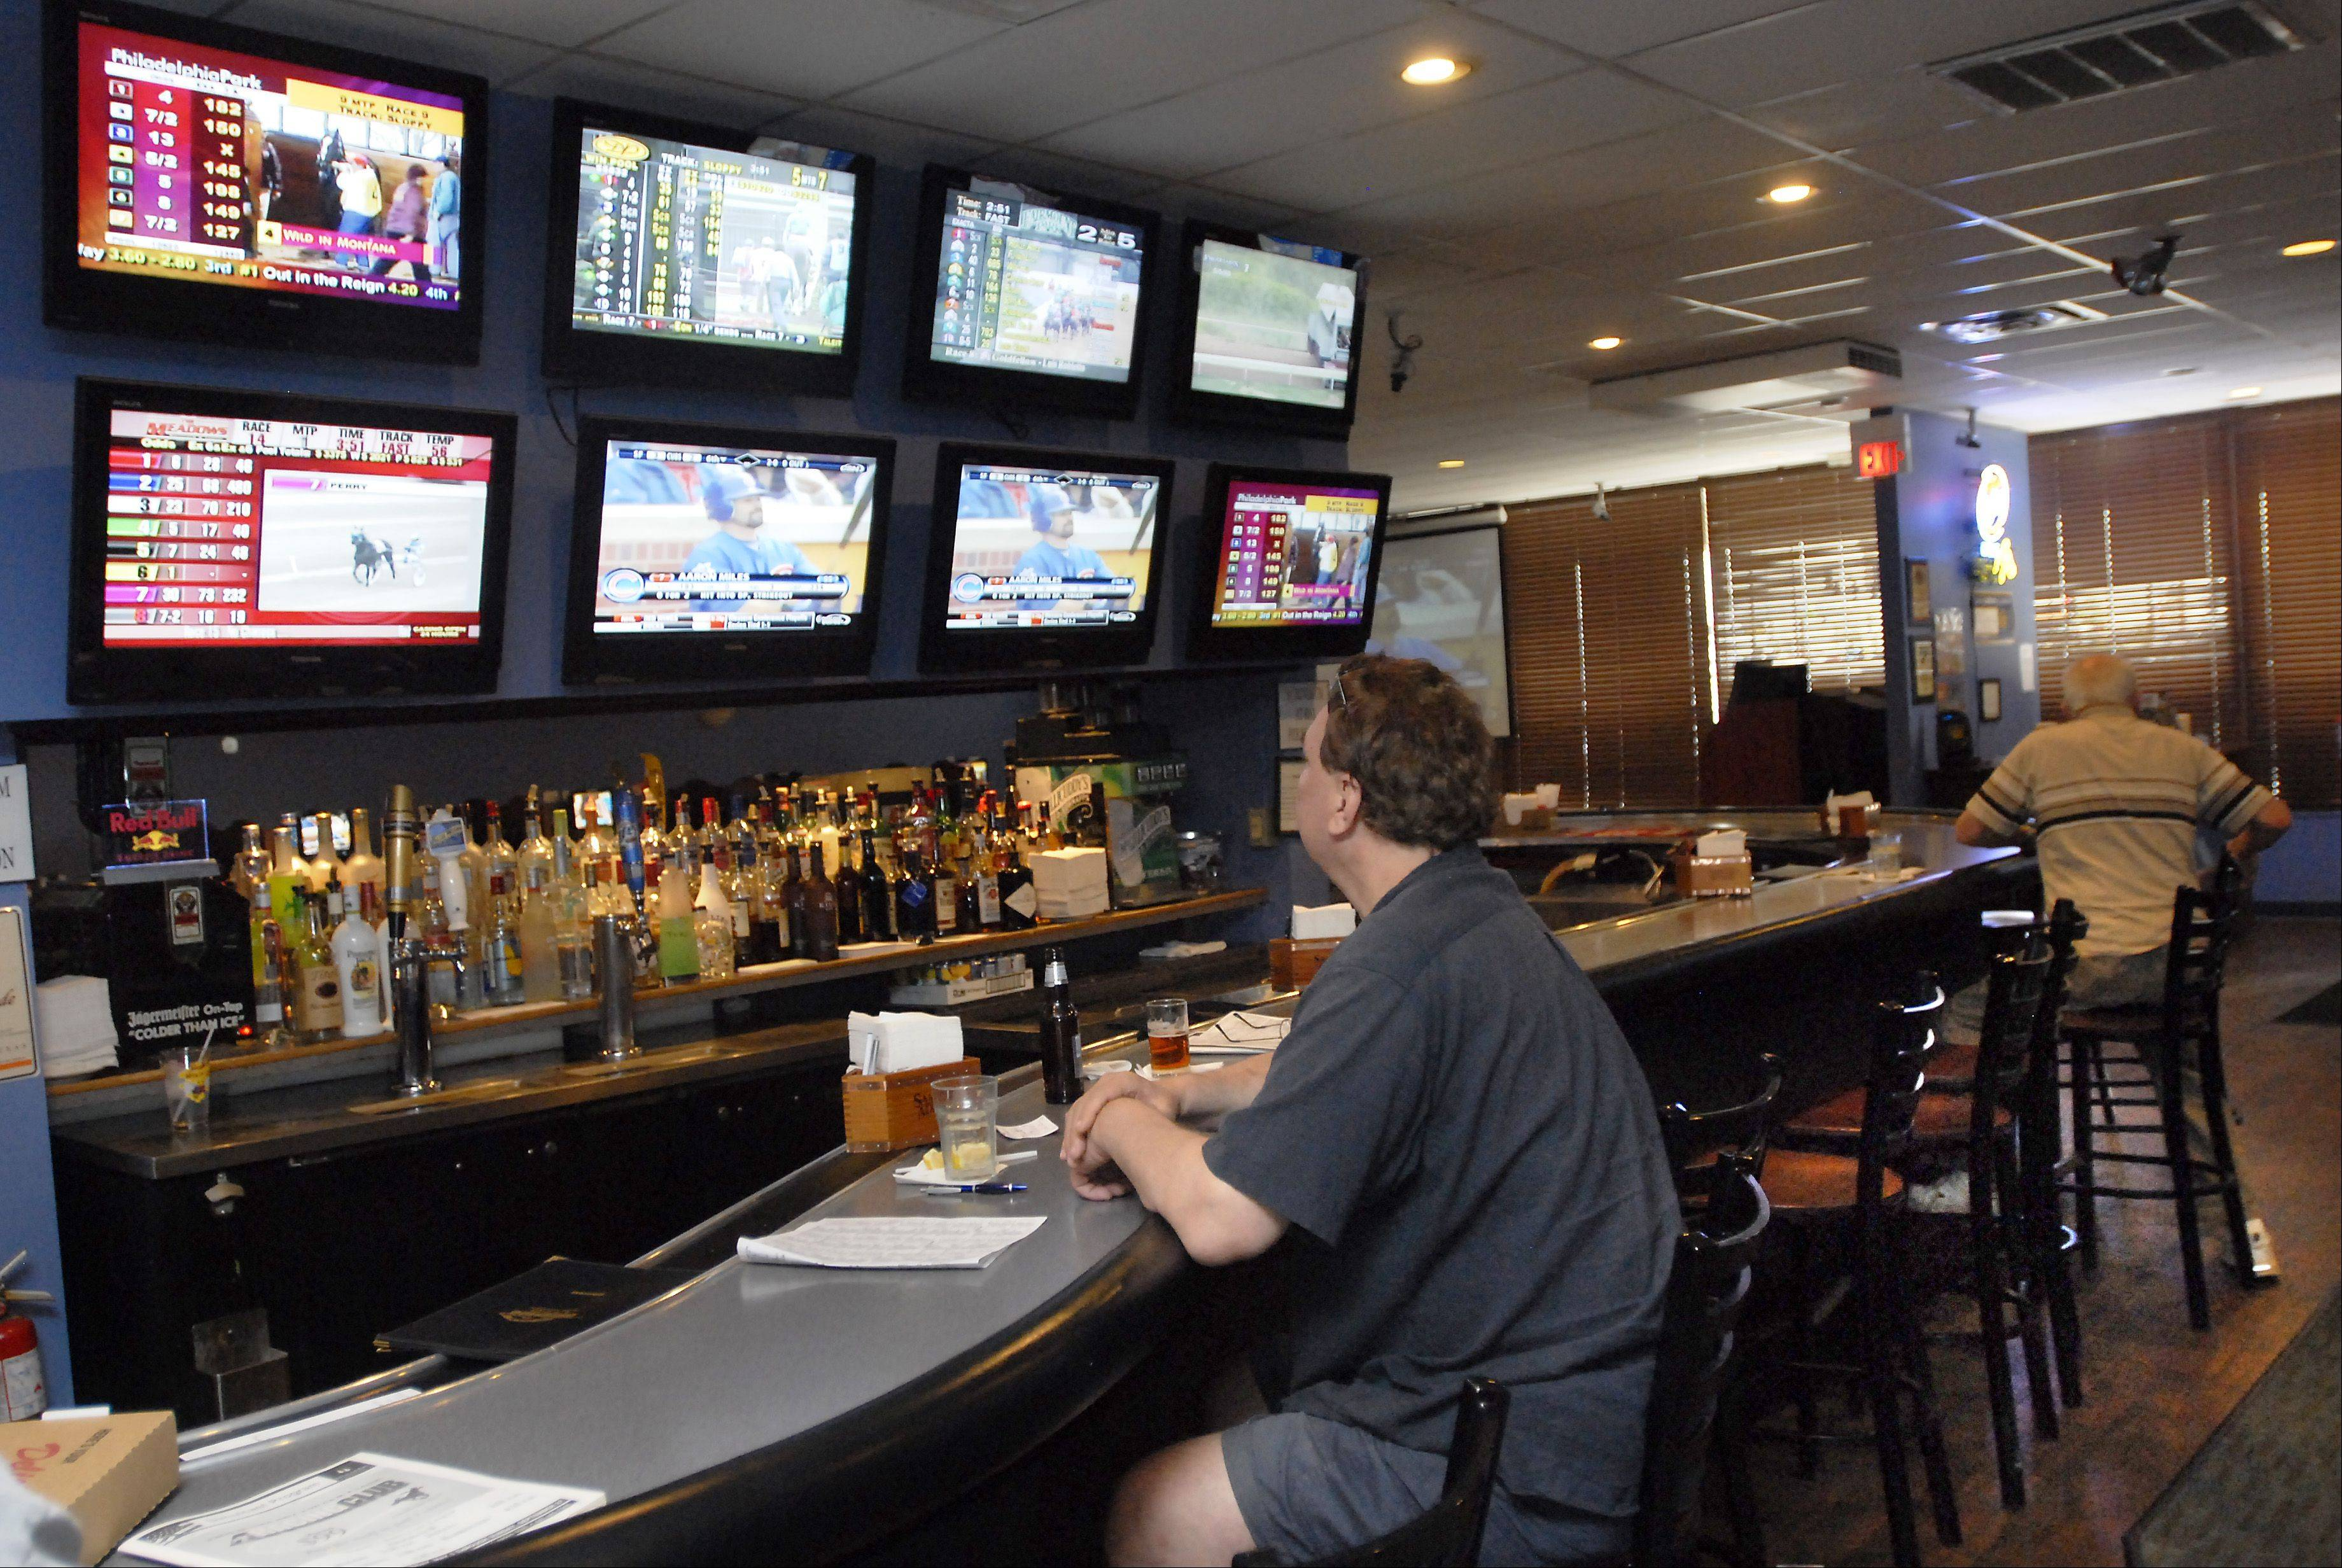 Elk Grove Village businesses betting on video gambling